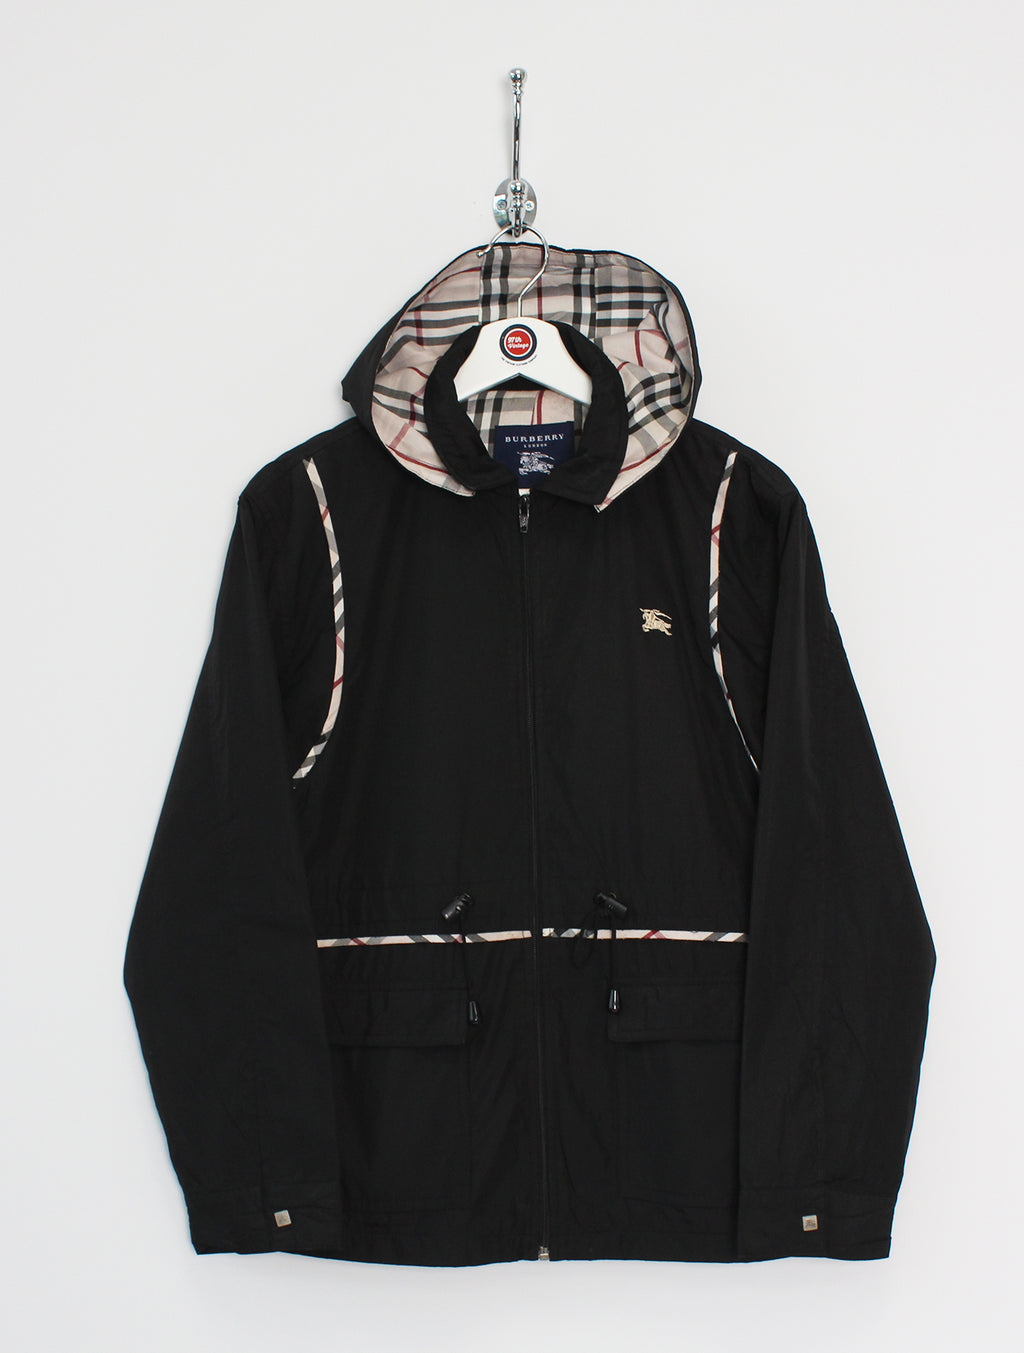 Burberry Jacket (S)